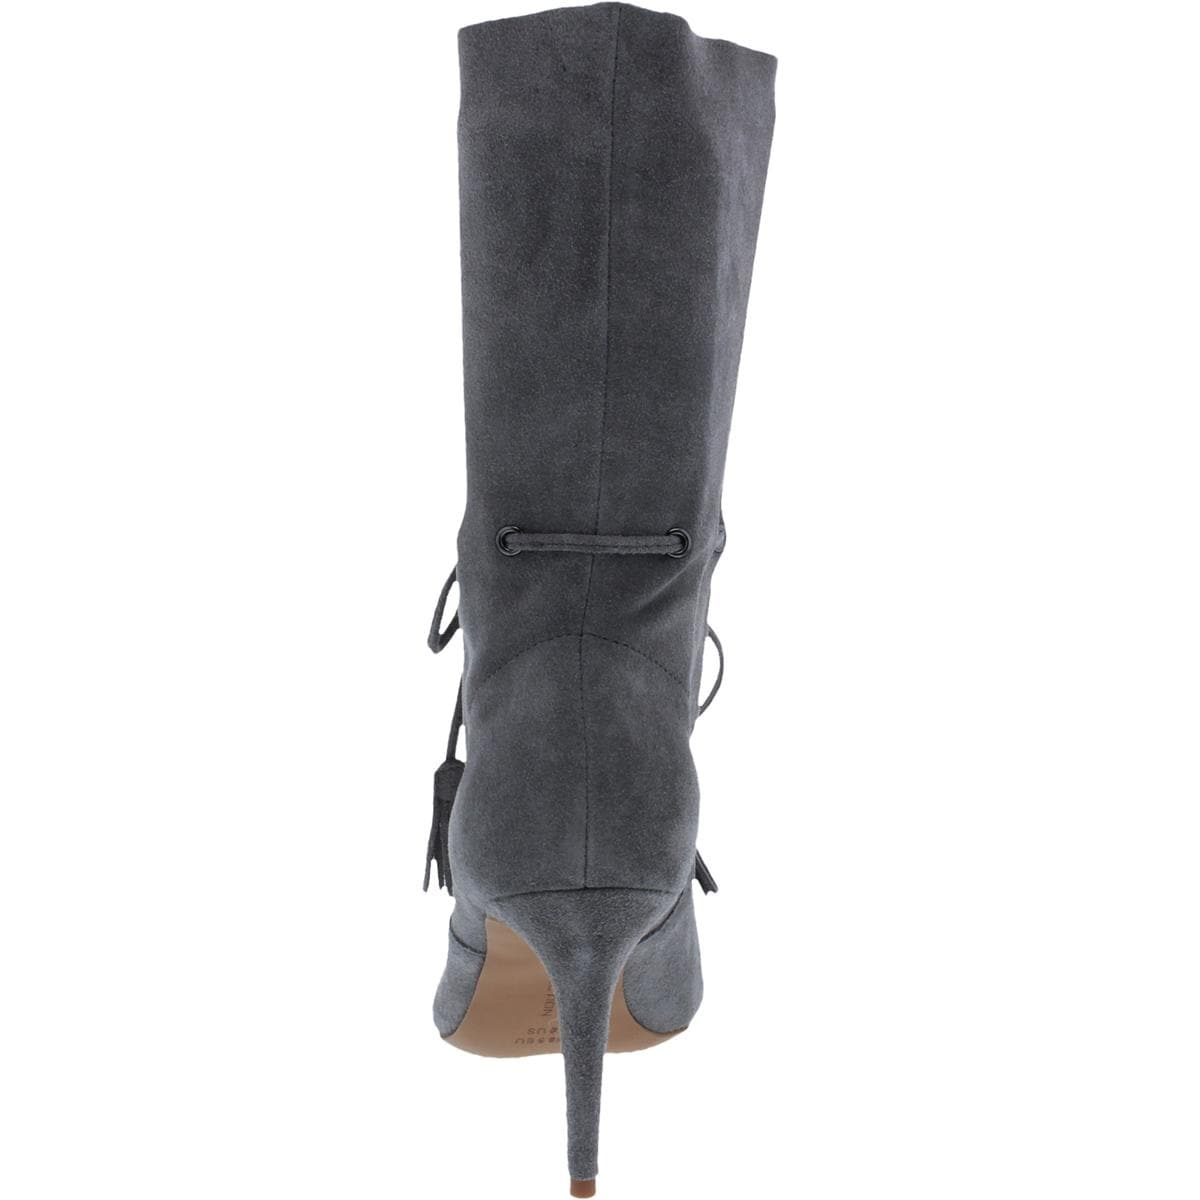 77a688a2469 Shop French Connection Womens Rowdy Dress Boots Suede Pointed Toe - Free  Shipping Today - Overstock - 21617839